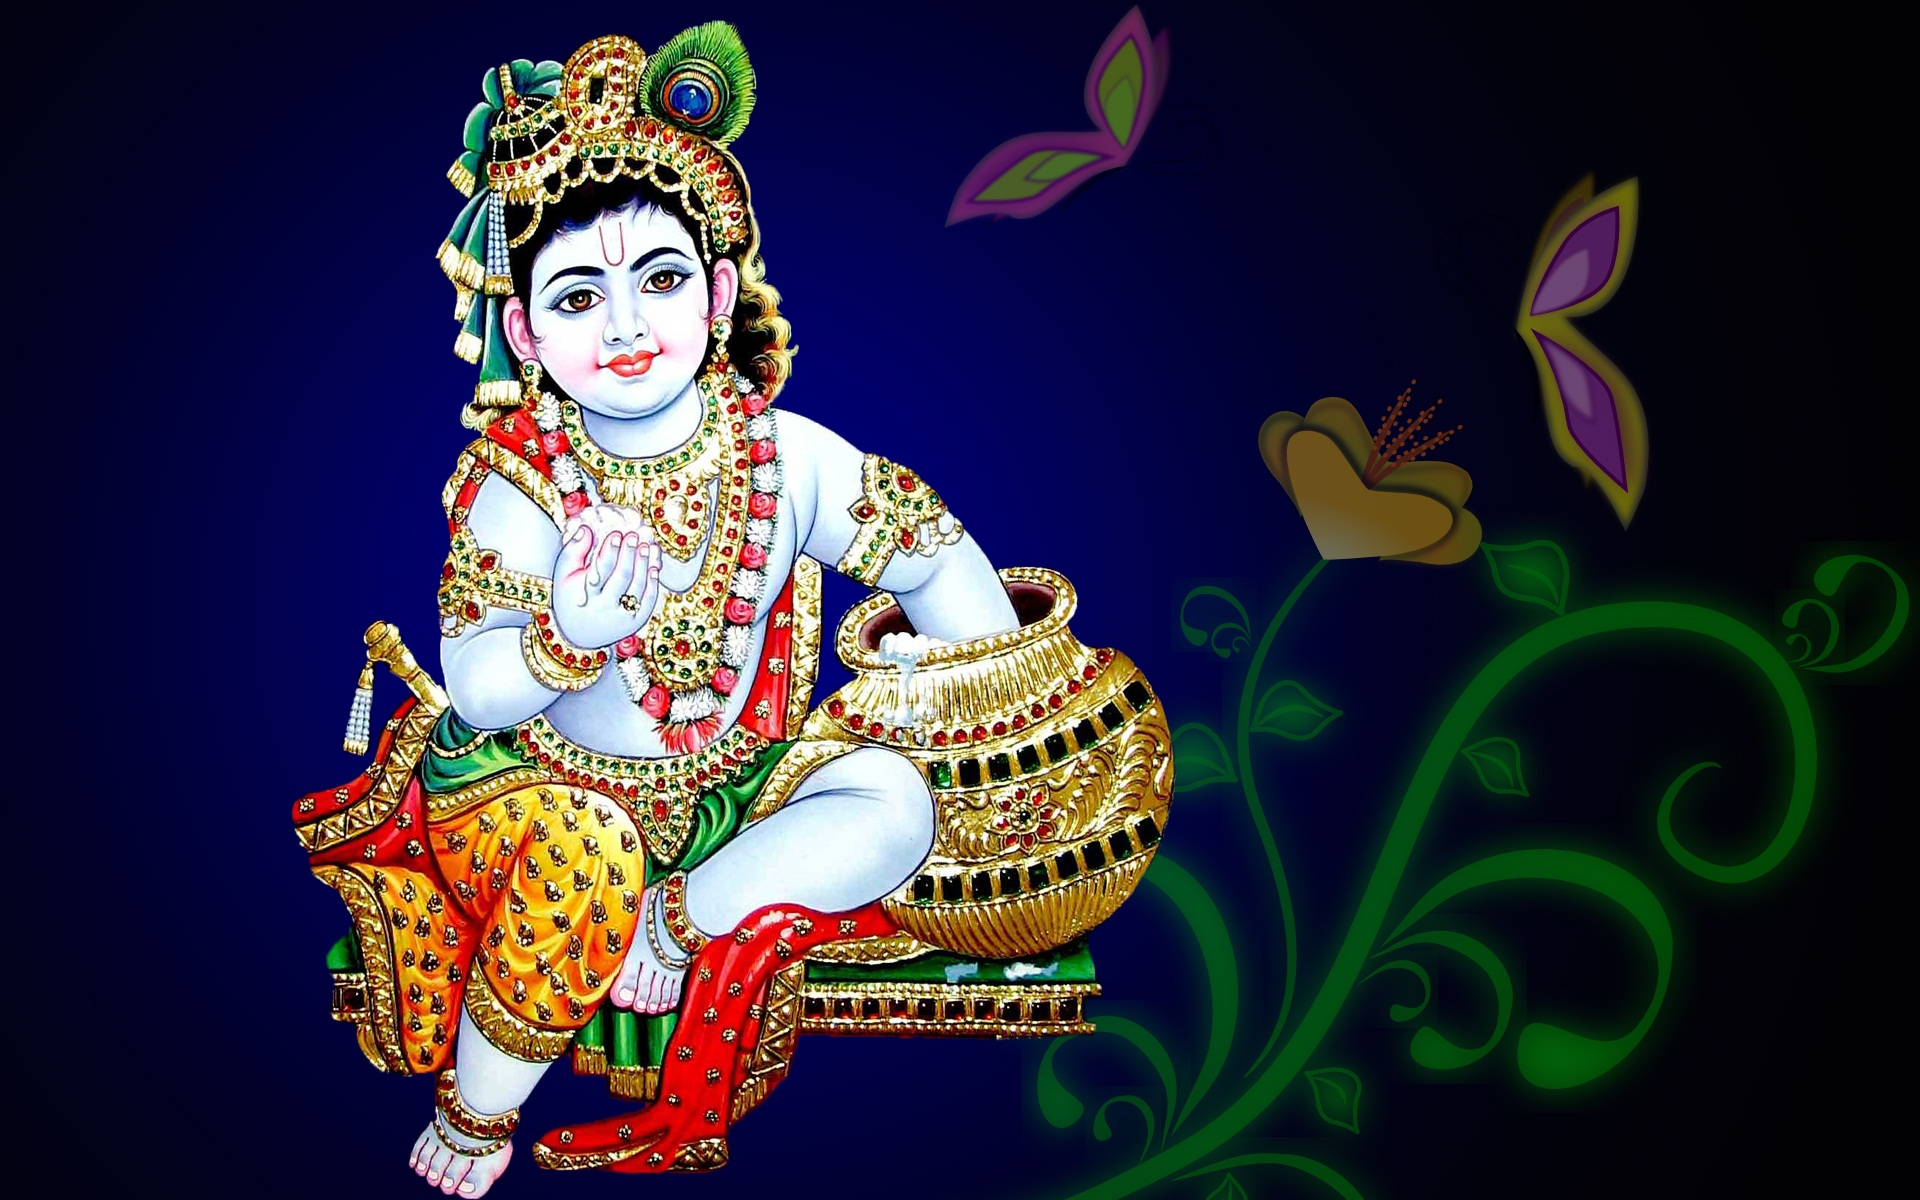 Hd wallpaper krishna - Download Happy Krishna Janmashtami Hd Wallpaper